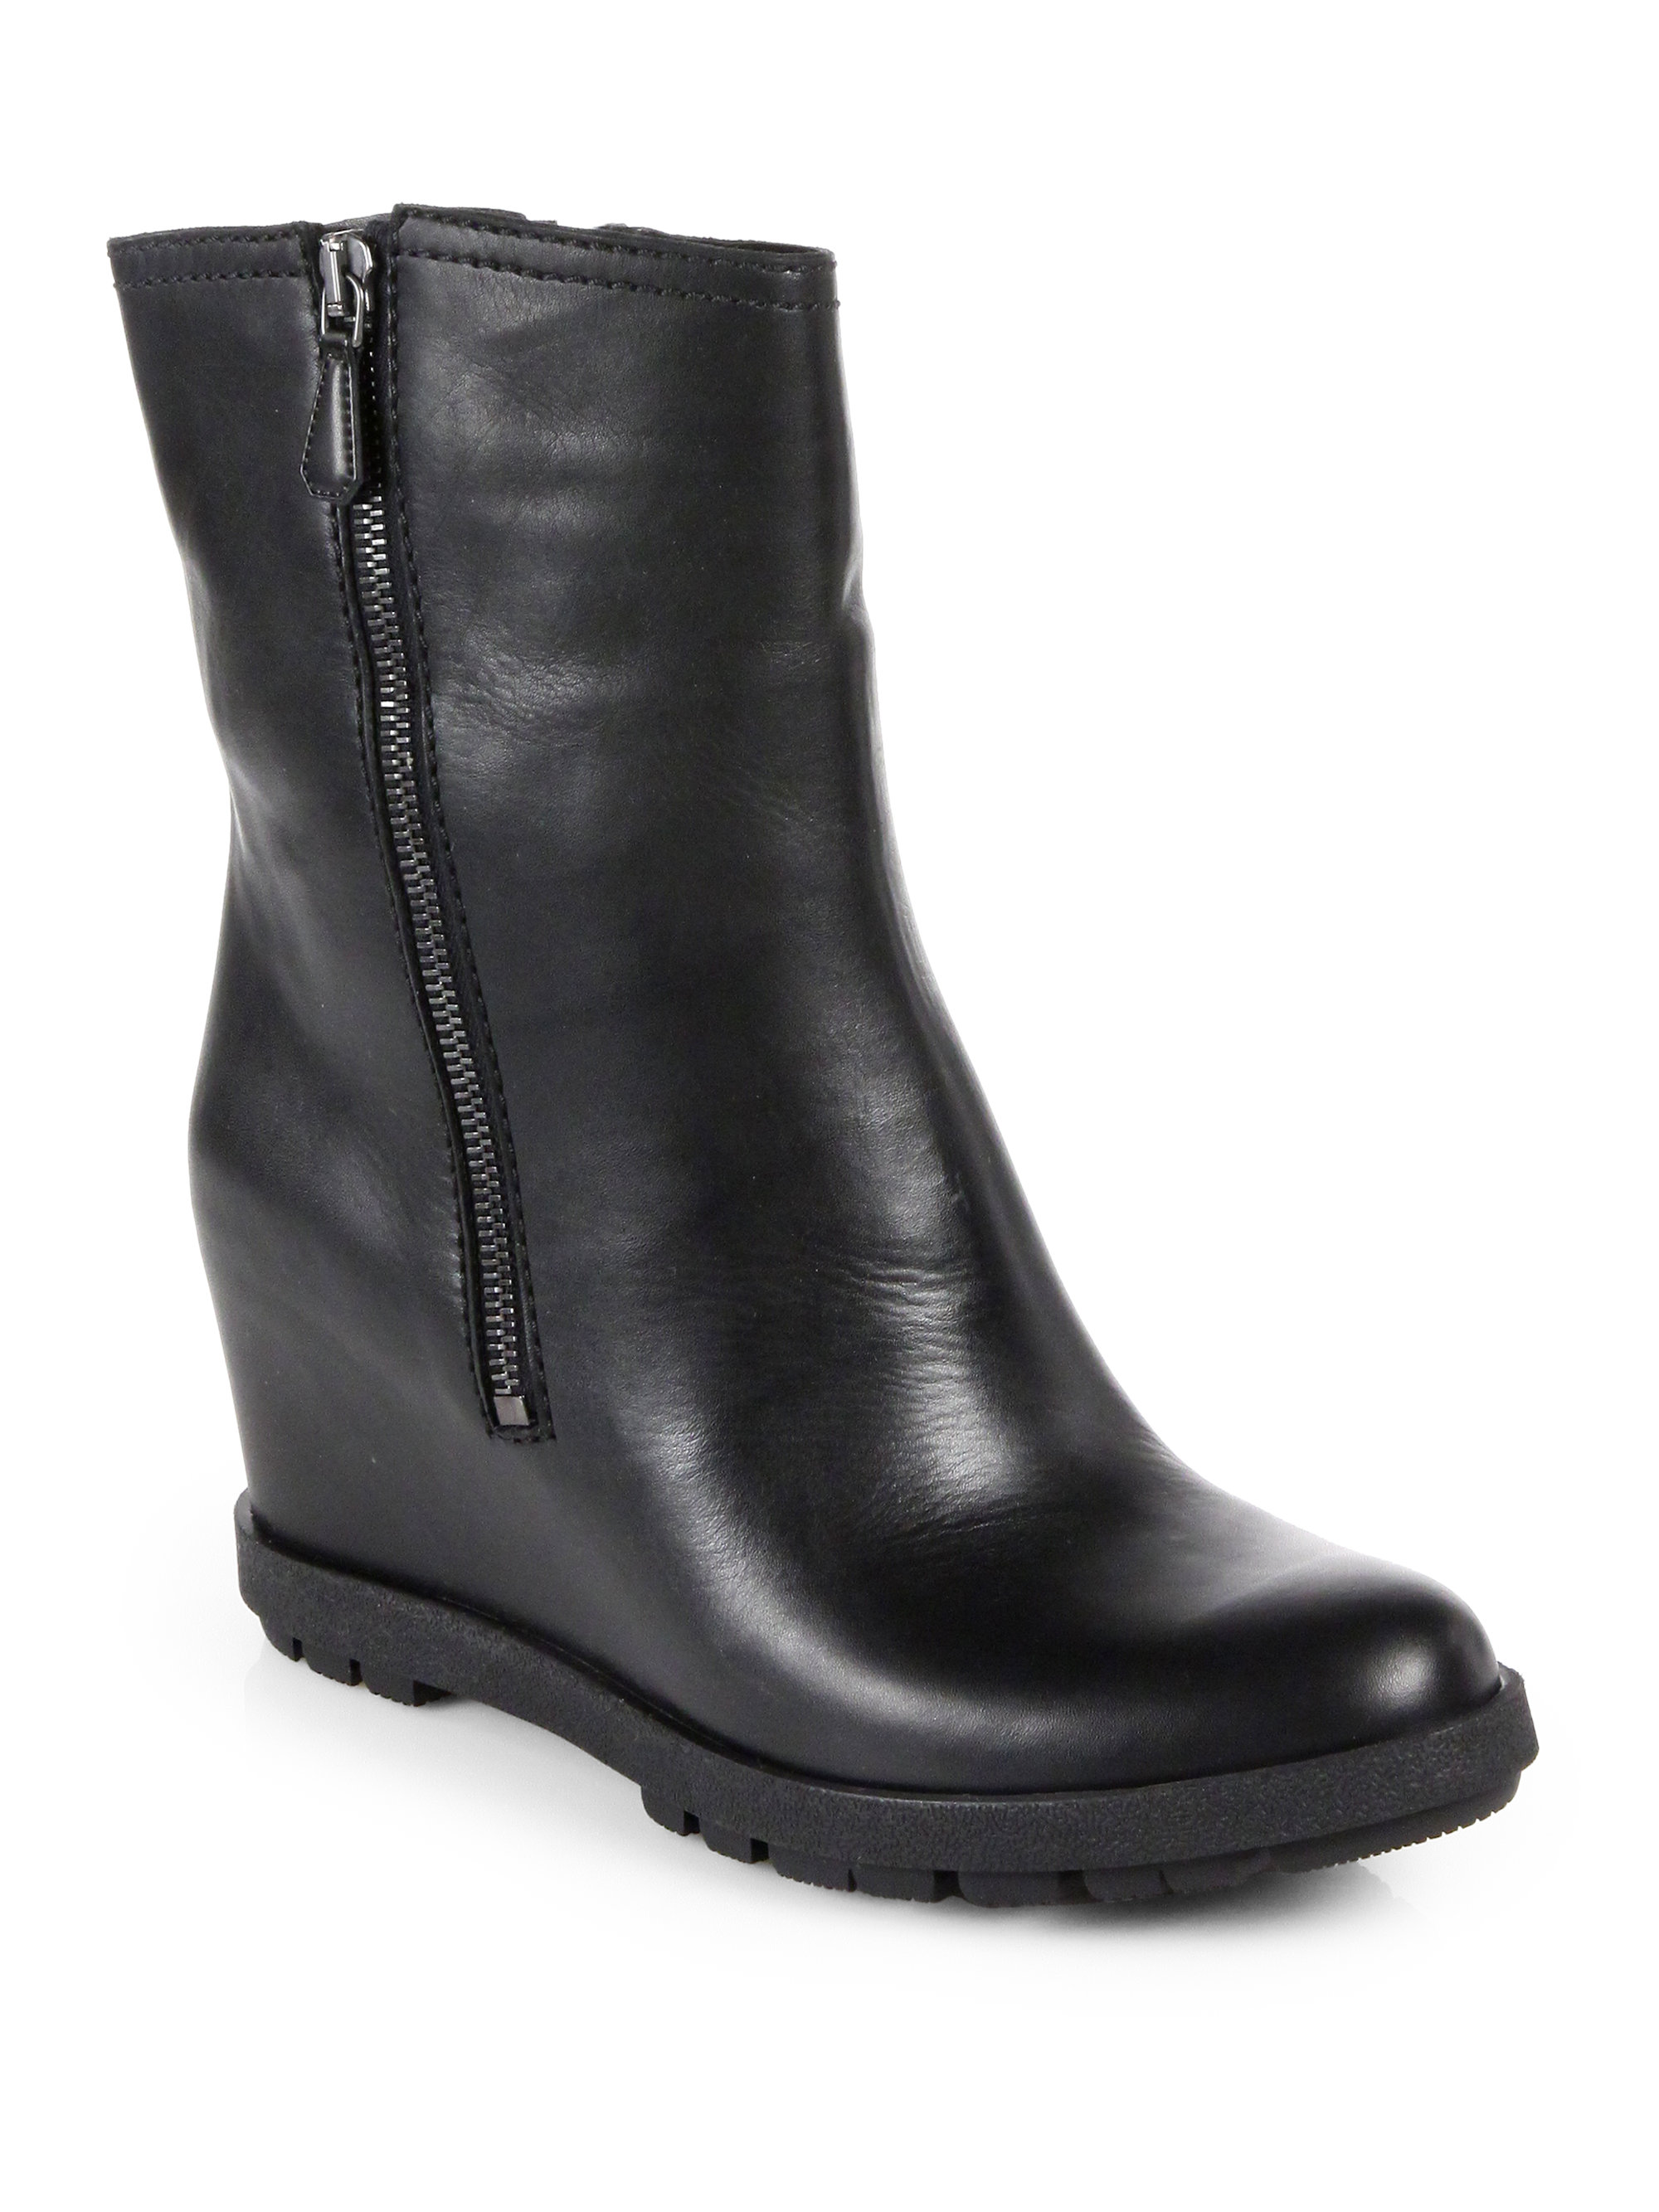 prada leather wedge mid calf boots in black lyst